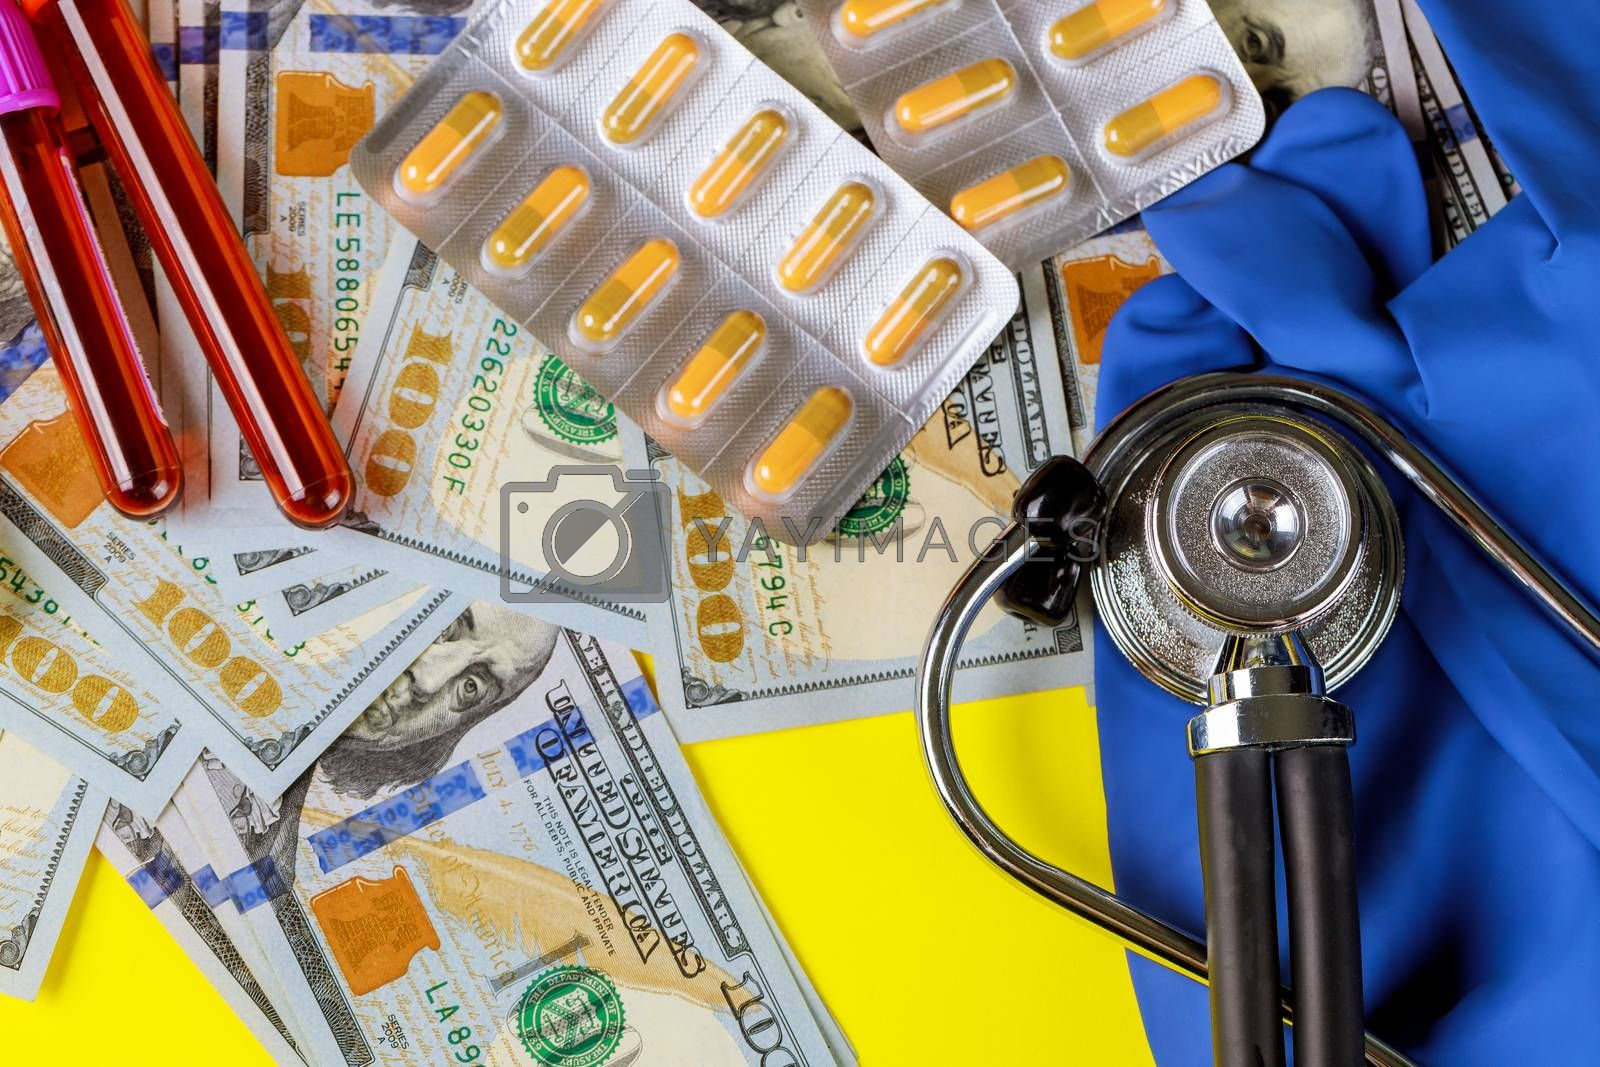 Money dollar with pills in blister on a stethoscope blood test tubes for pills blisters expensive cost of healthcare or financing medicine